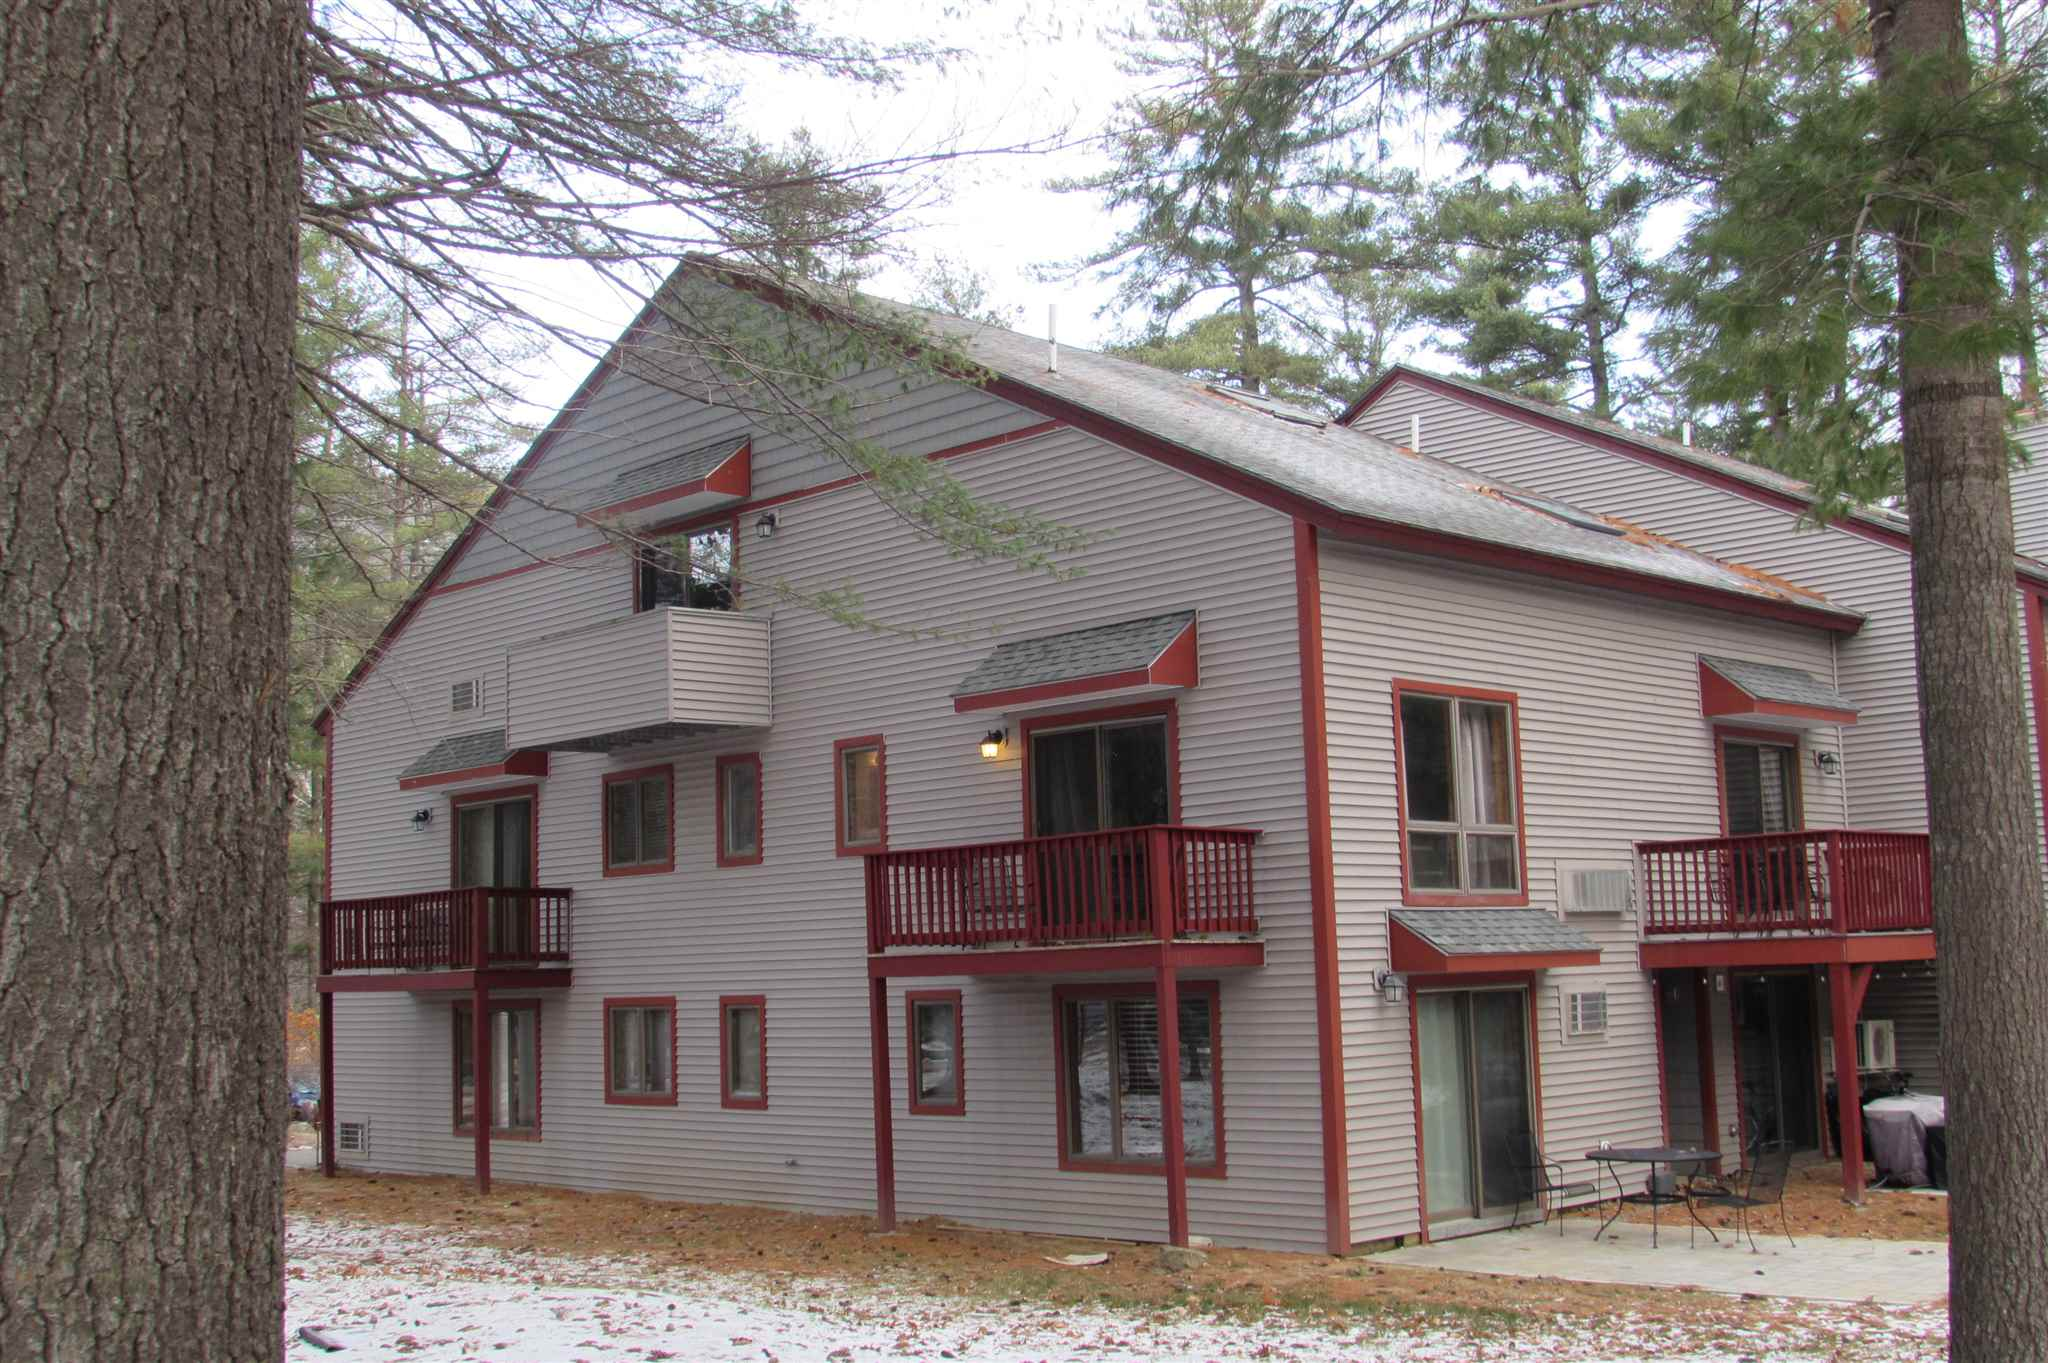 1-O River Run, Bartlett, New Hampshire 03812, NH-Carroll, 1 Bedroom Bedrooms, 1 Room Rooms,1 BathroomBathrooms,Condo,Residential Sale,River Run,4841365